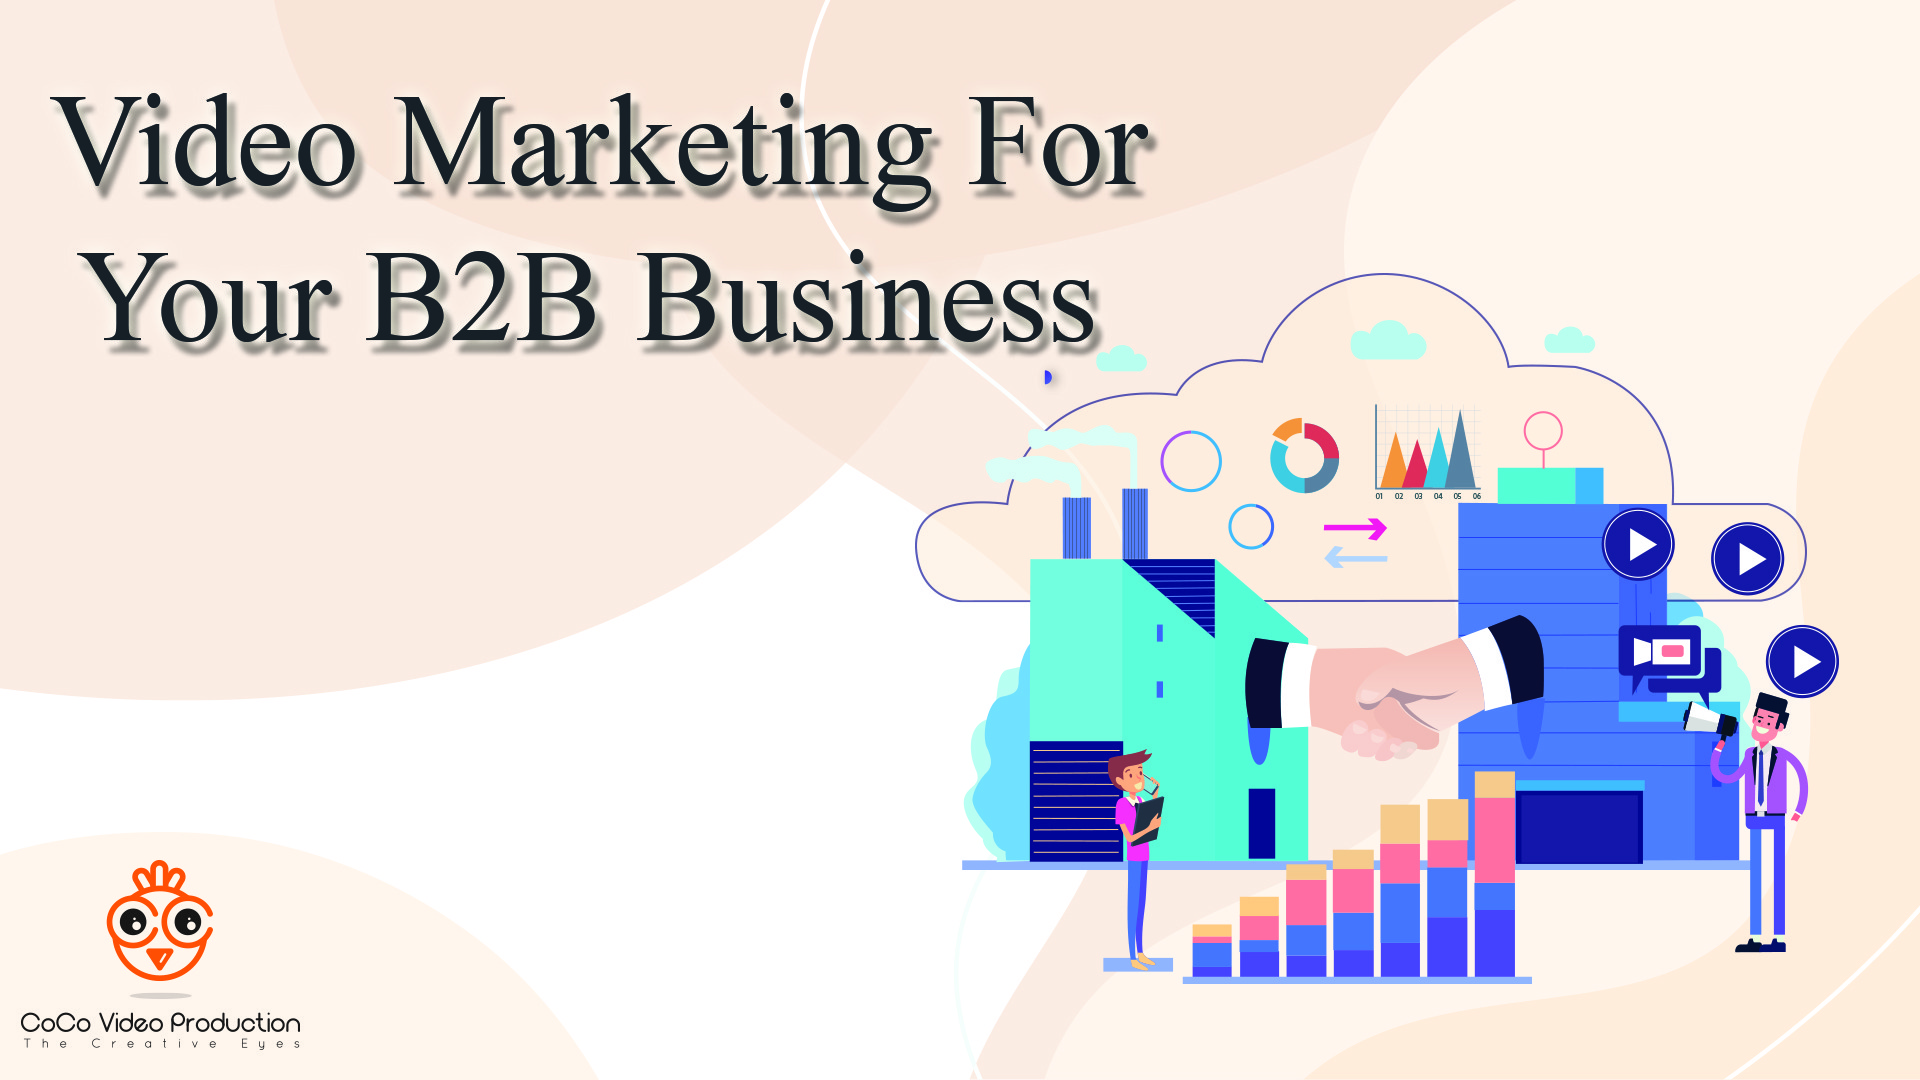 Video Marketing For Your B2B Business